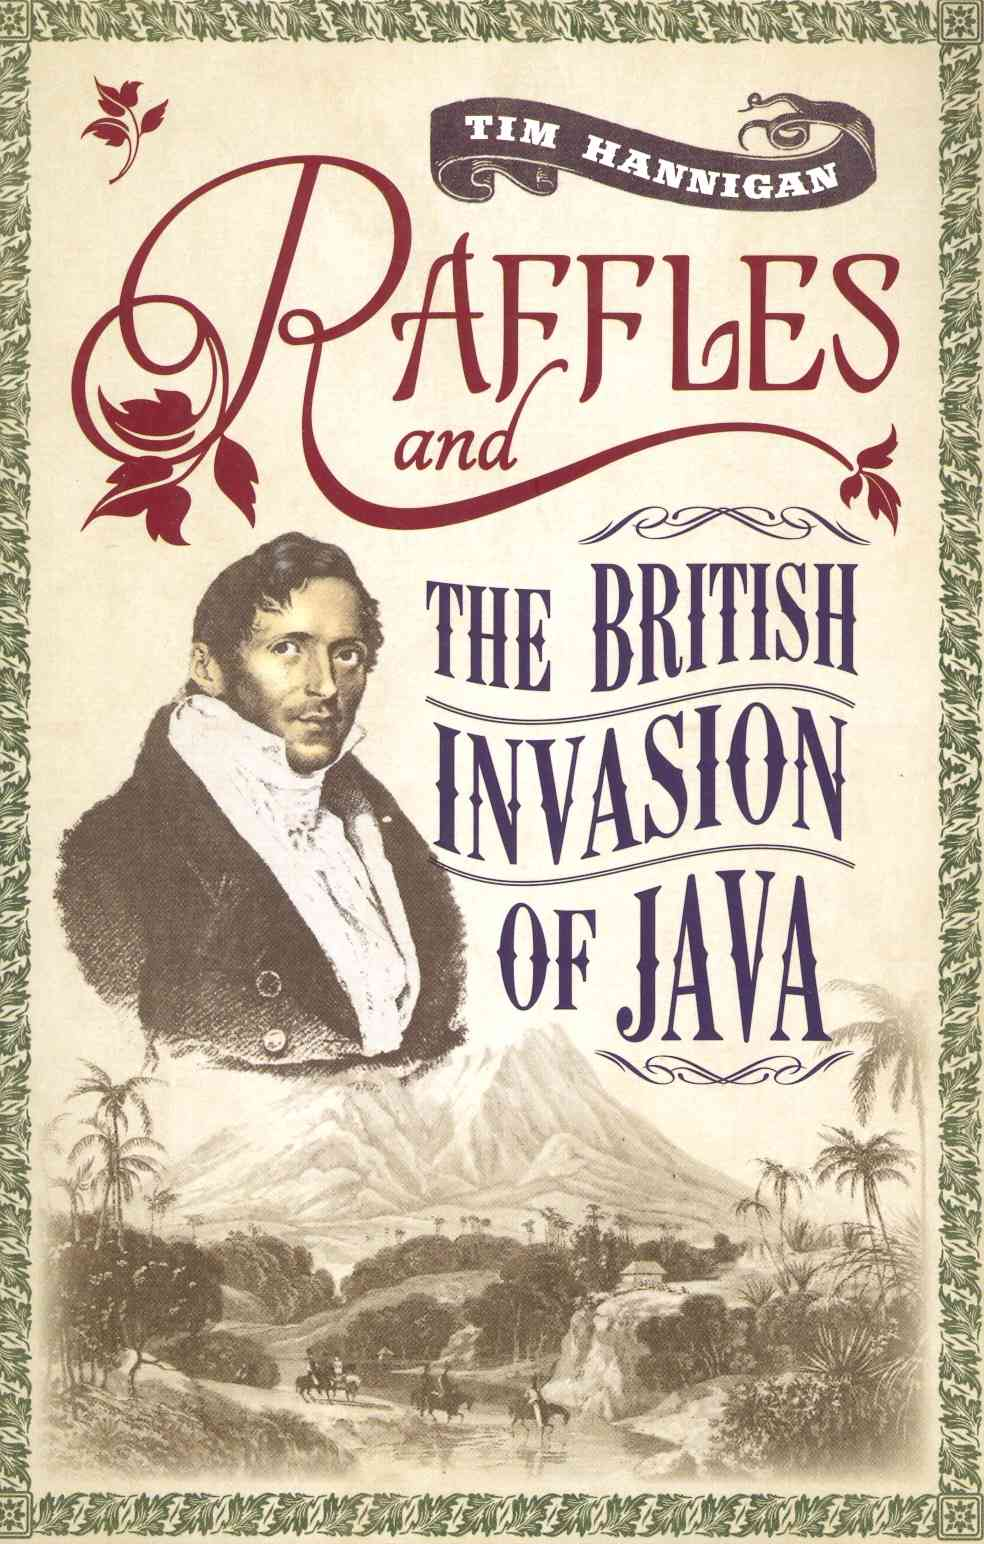 Raffles and the British Invasion of Java By Hannigan, Tim